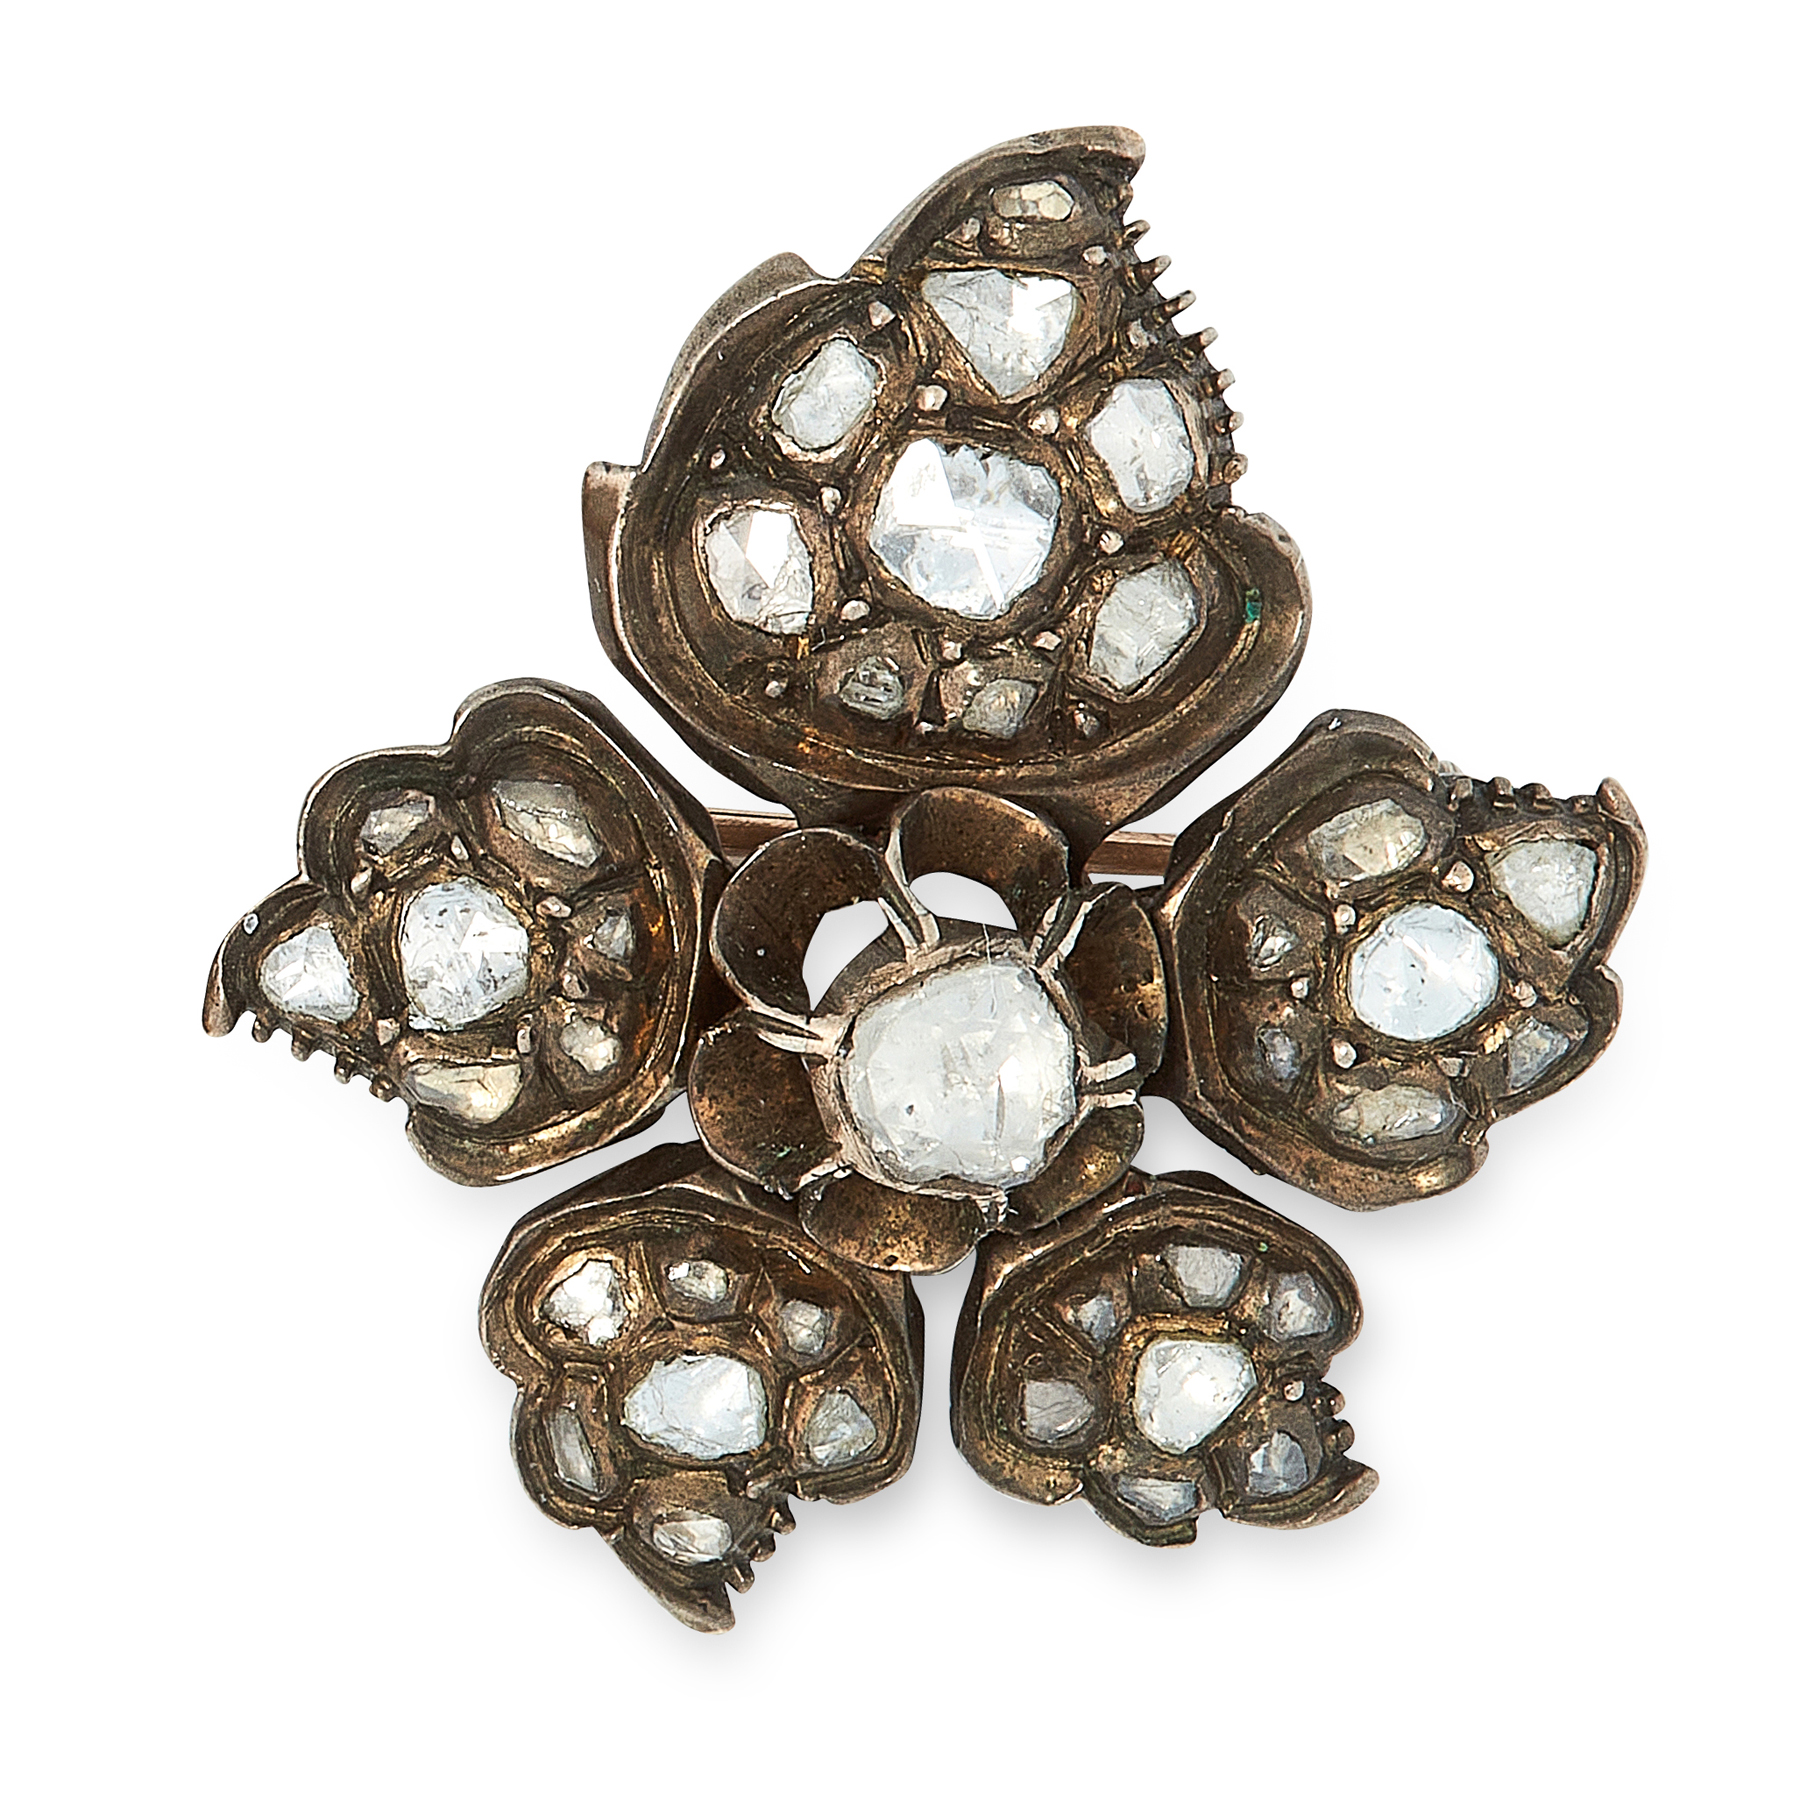 AN ANTIQUE GEORGIAN DIAMOND BROOCH, EARLY 19TH CENTURY in yellow gold and silver, designed as a